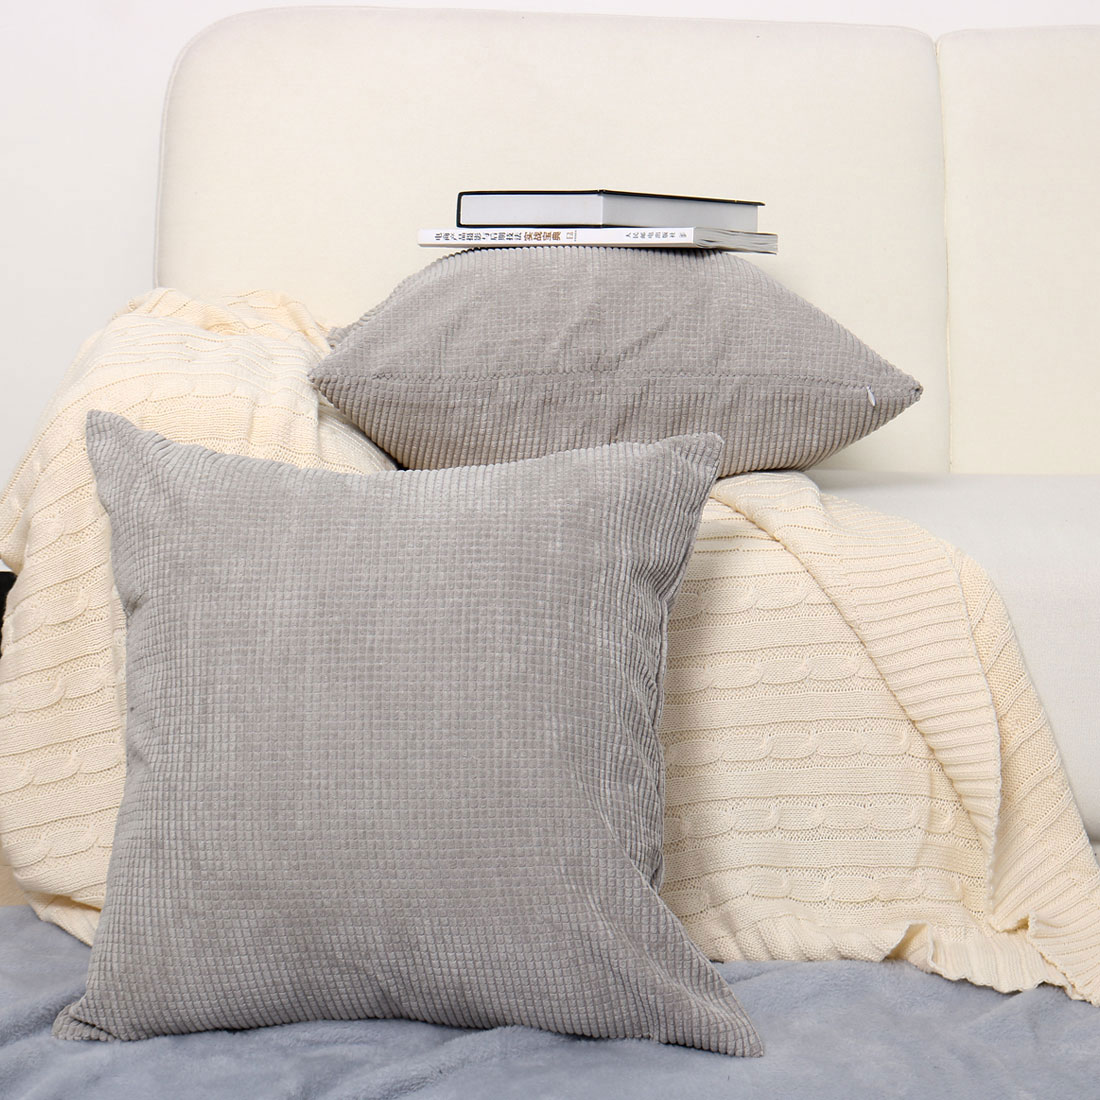 High Quality Sofa Pillows Home Sofa Cushion Cover Corduroy Striped Decorative Throw Pillow Case Set